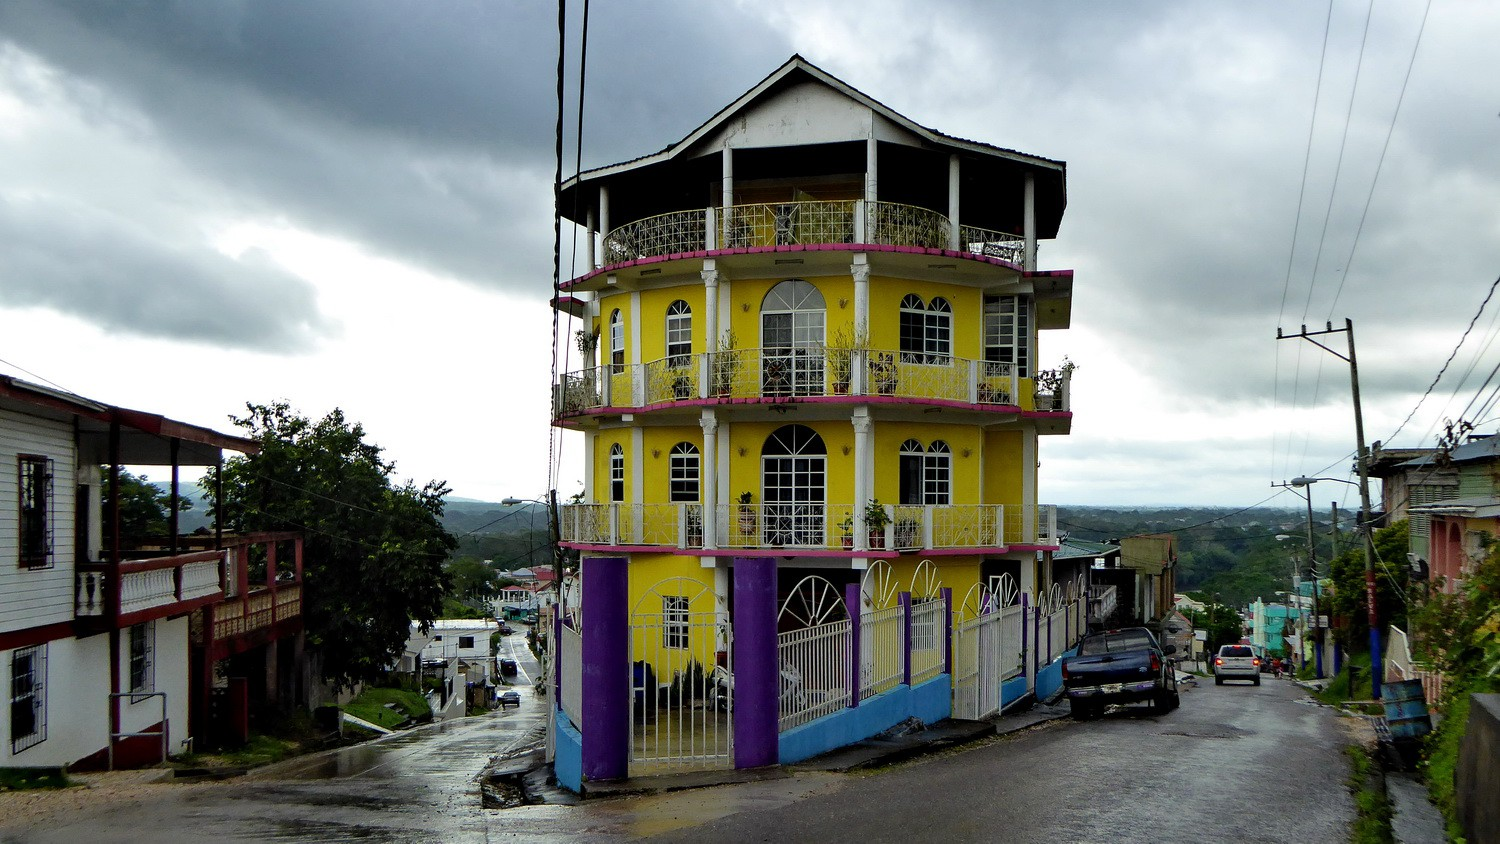 House in San Ignacio on the way to the Maya ruins Cahal Pech